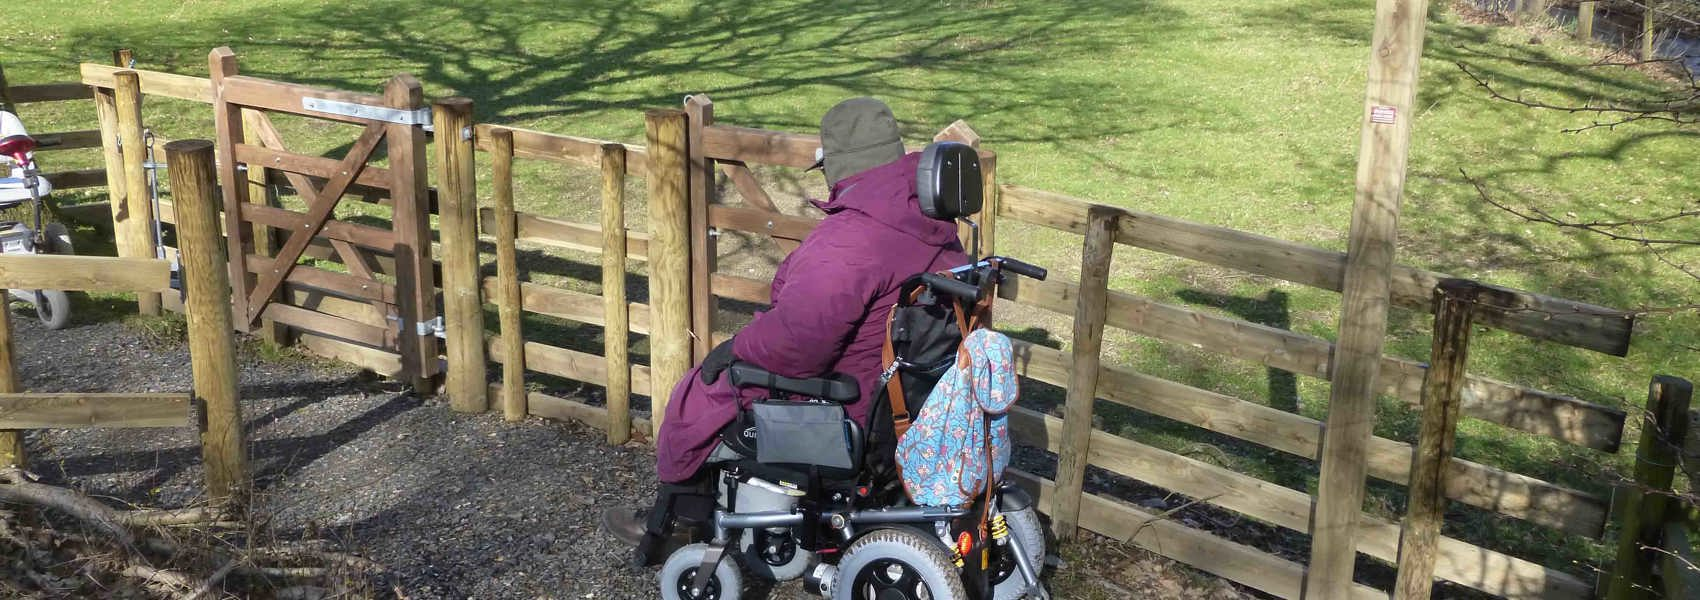 Community improves access at new Bampton path with help of a Friends grant